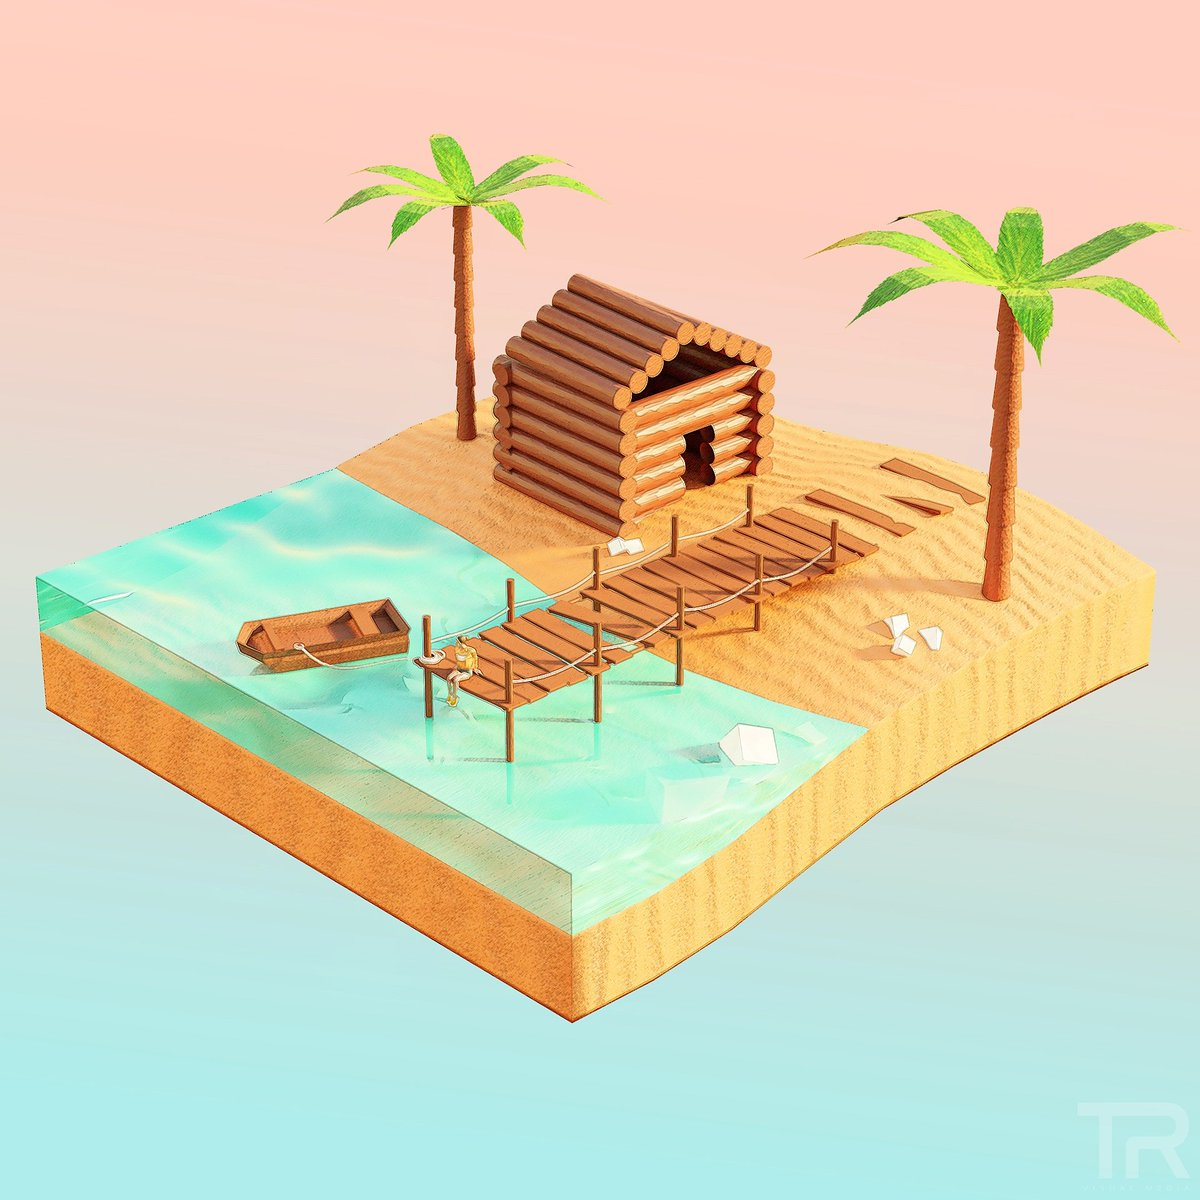 Its cold and dark and everything sucks so thought I'd make somewhere i'd quite like to be right now #blender3d #diorama #summer #holiday